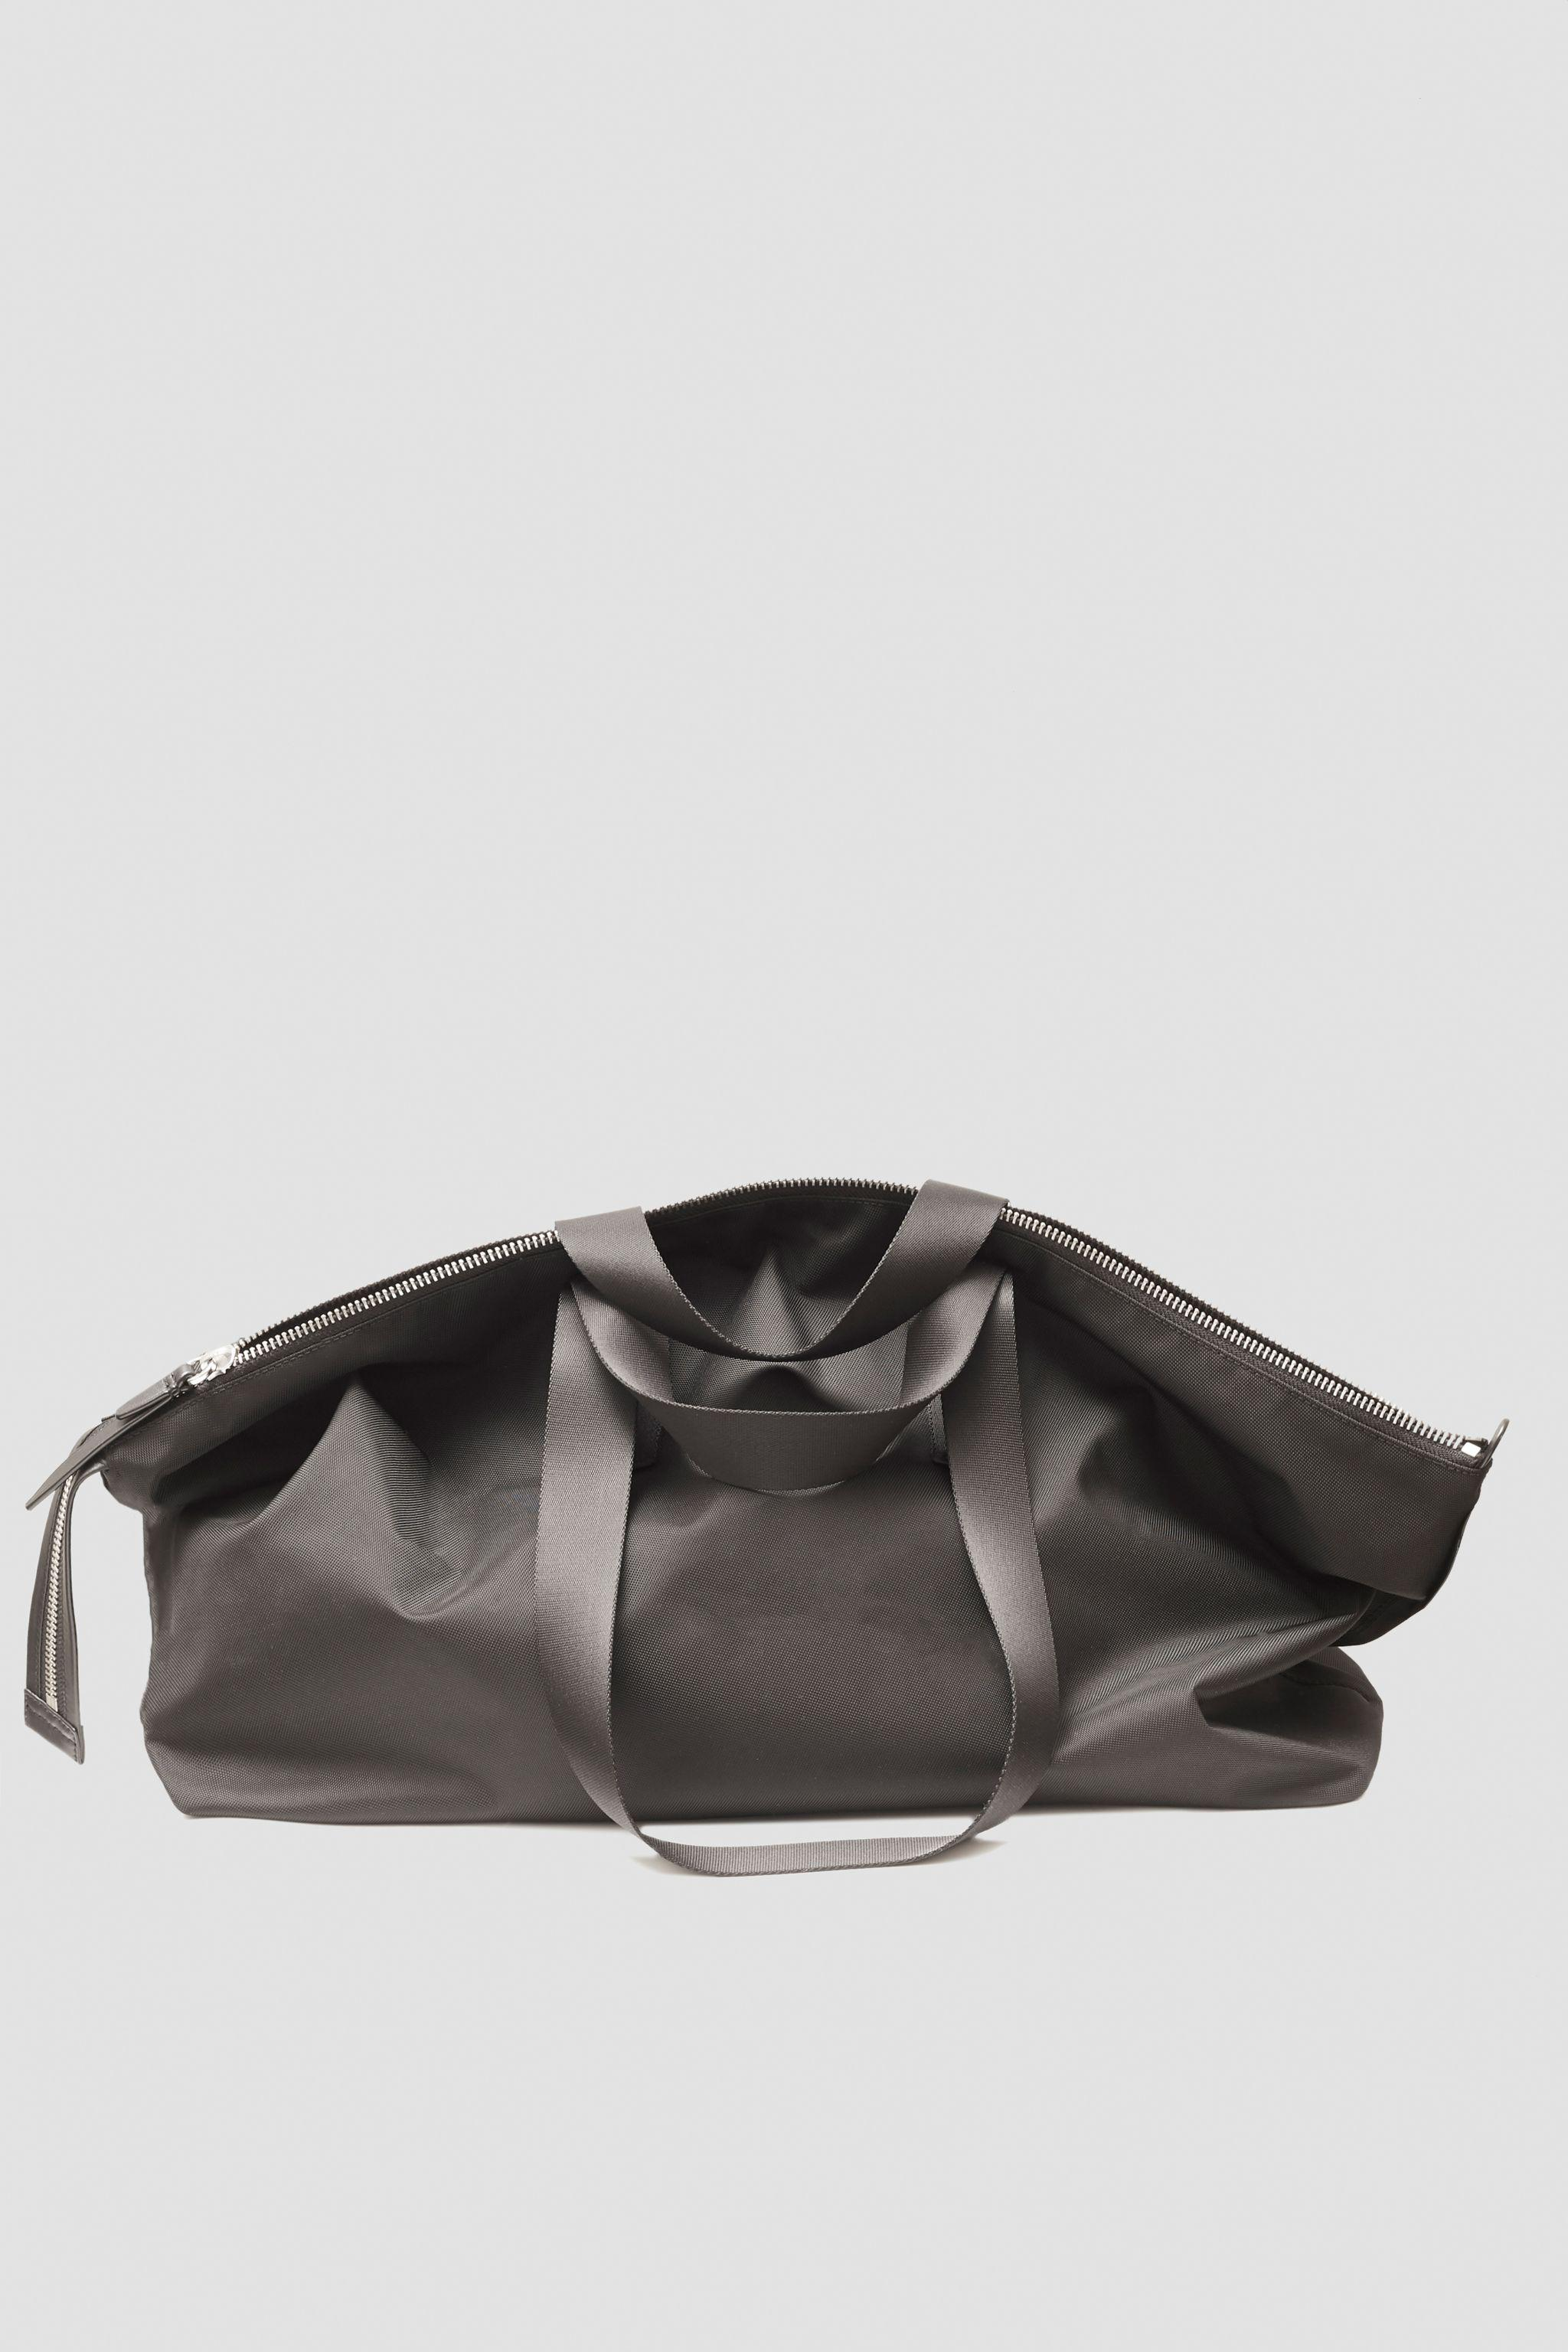 The Deconstructed Duffle Bag